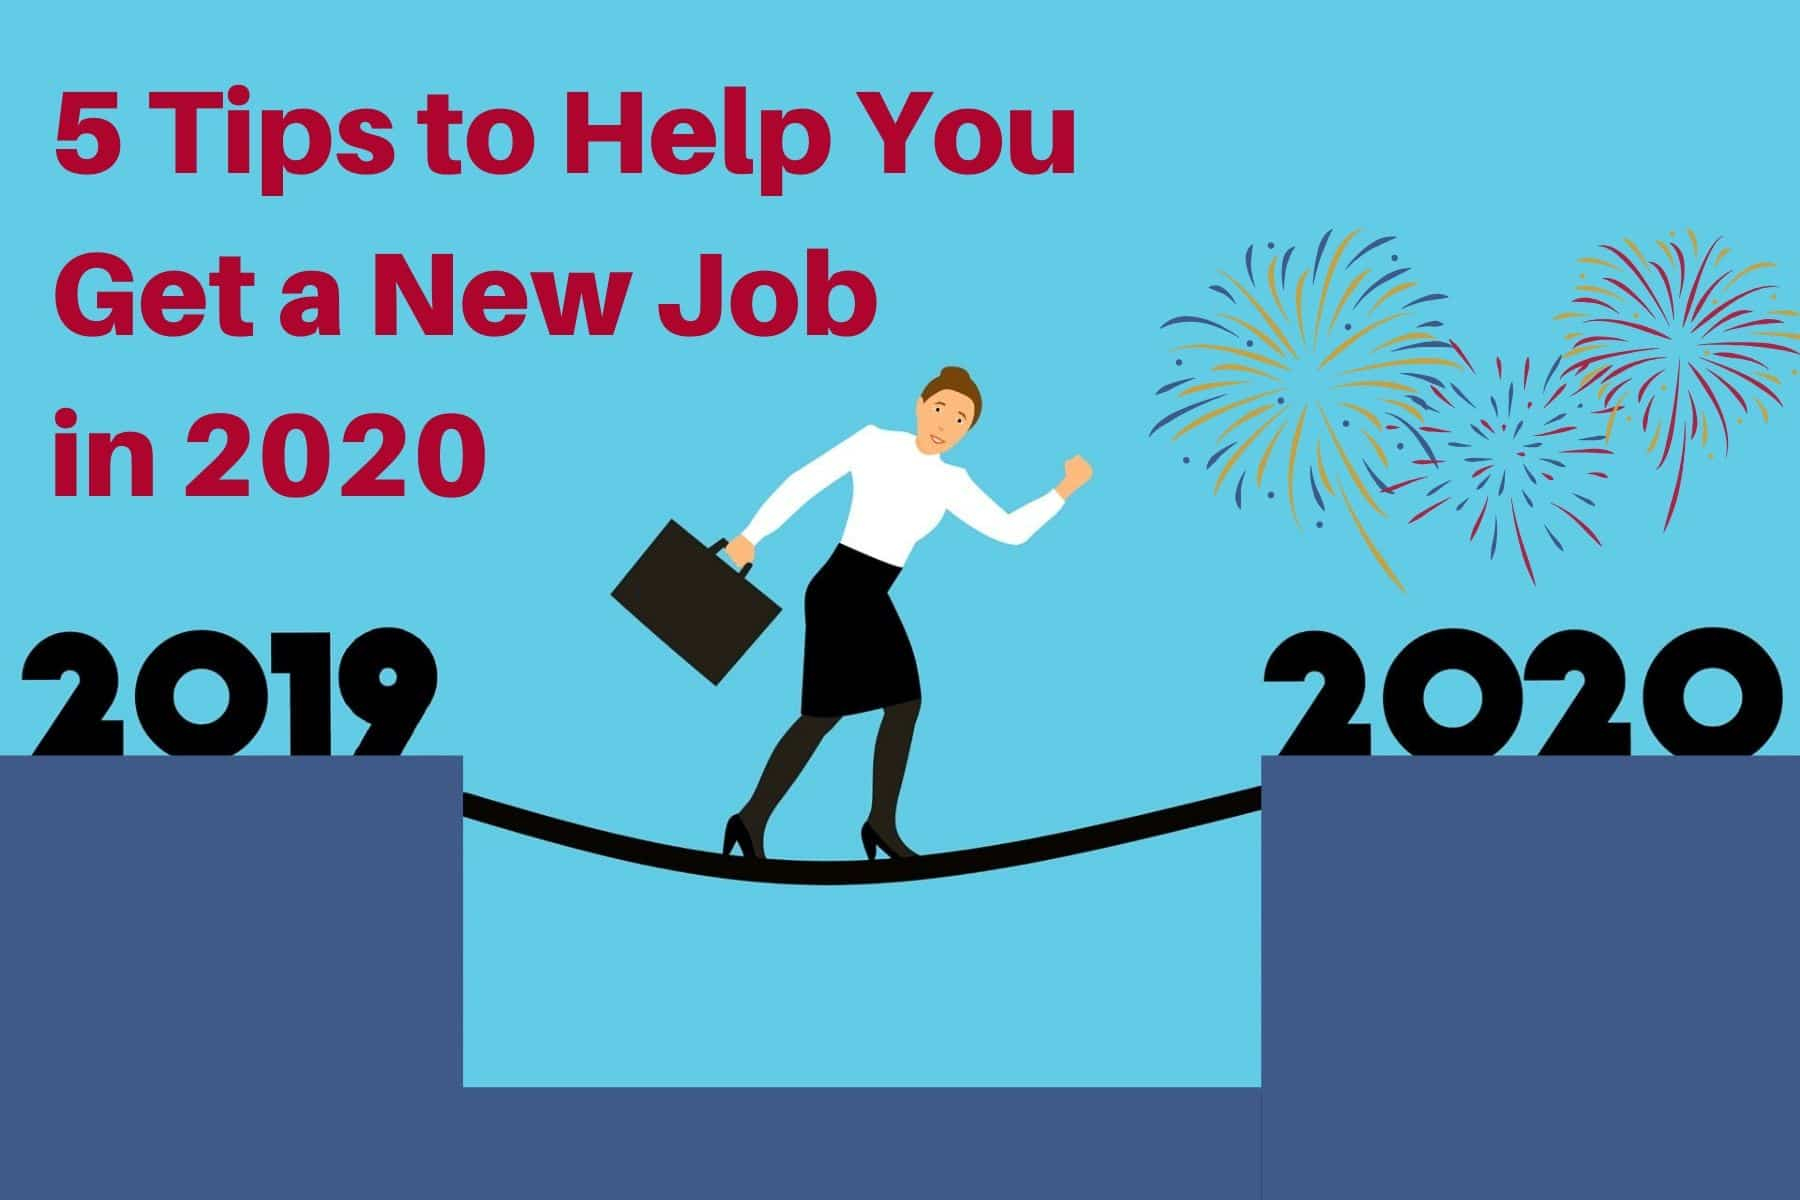 5 tips to help you get a new job in 2020